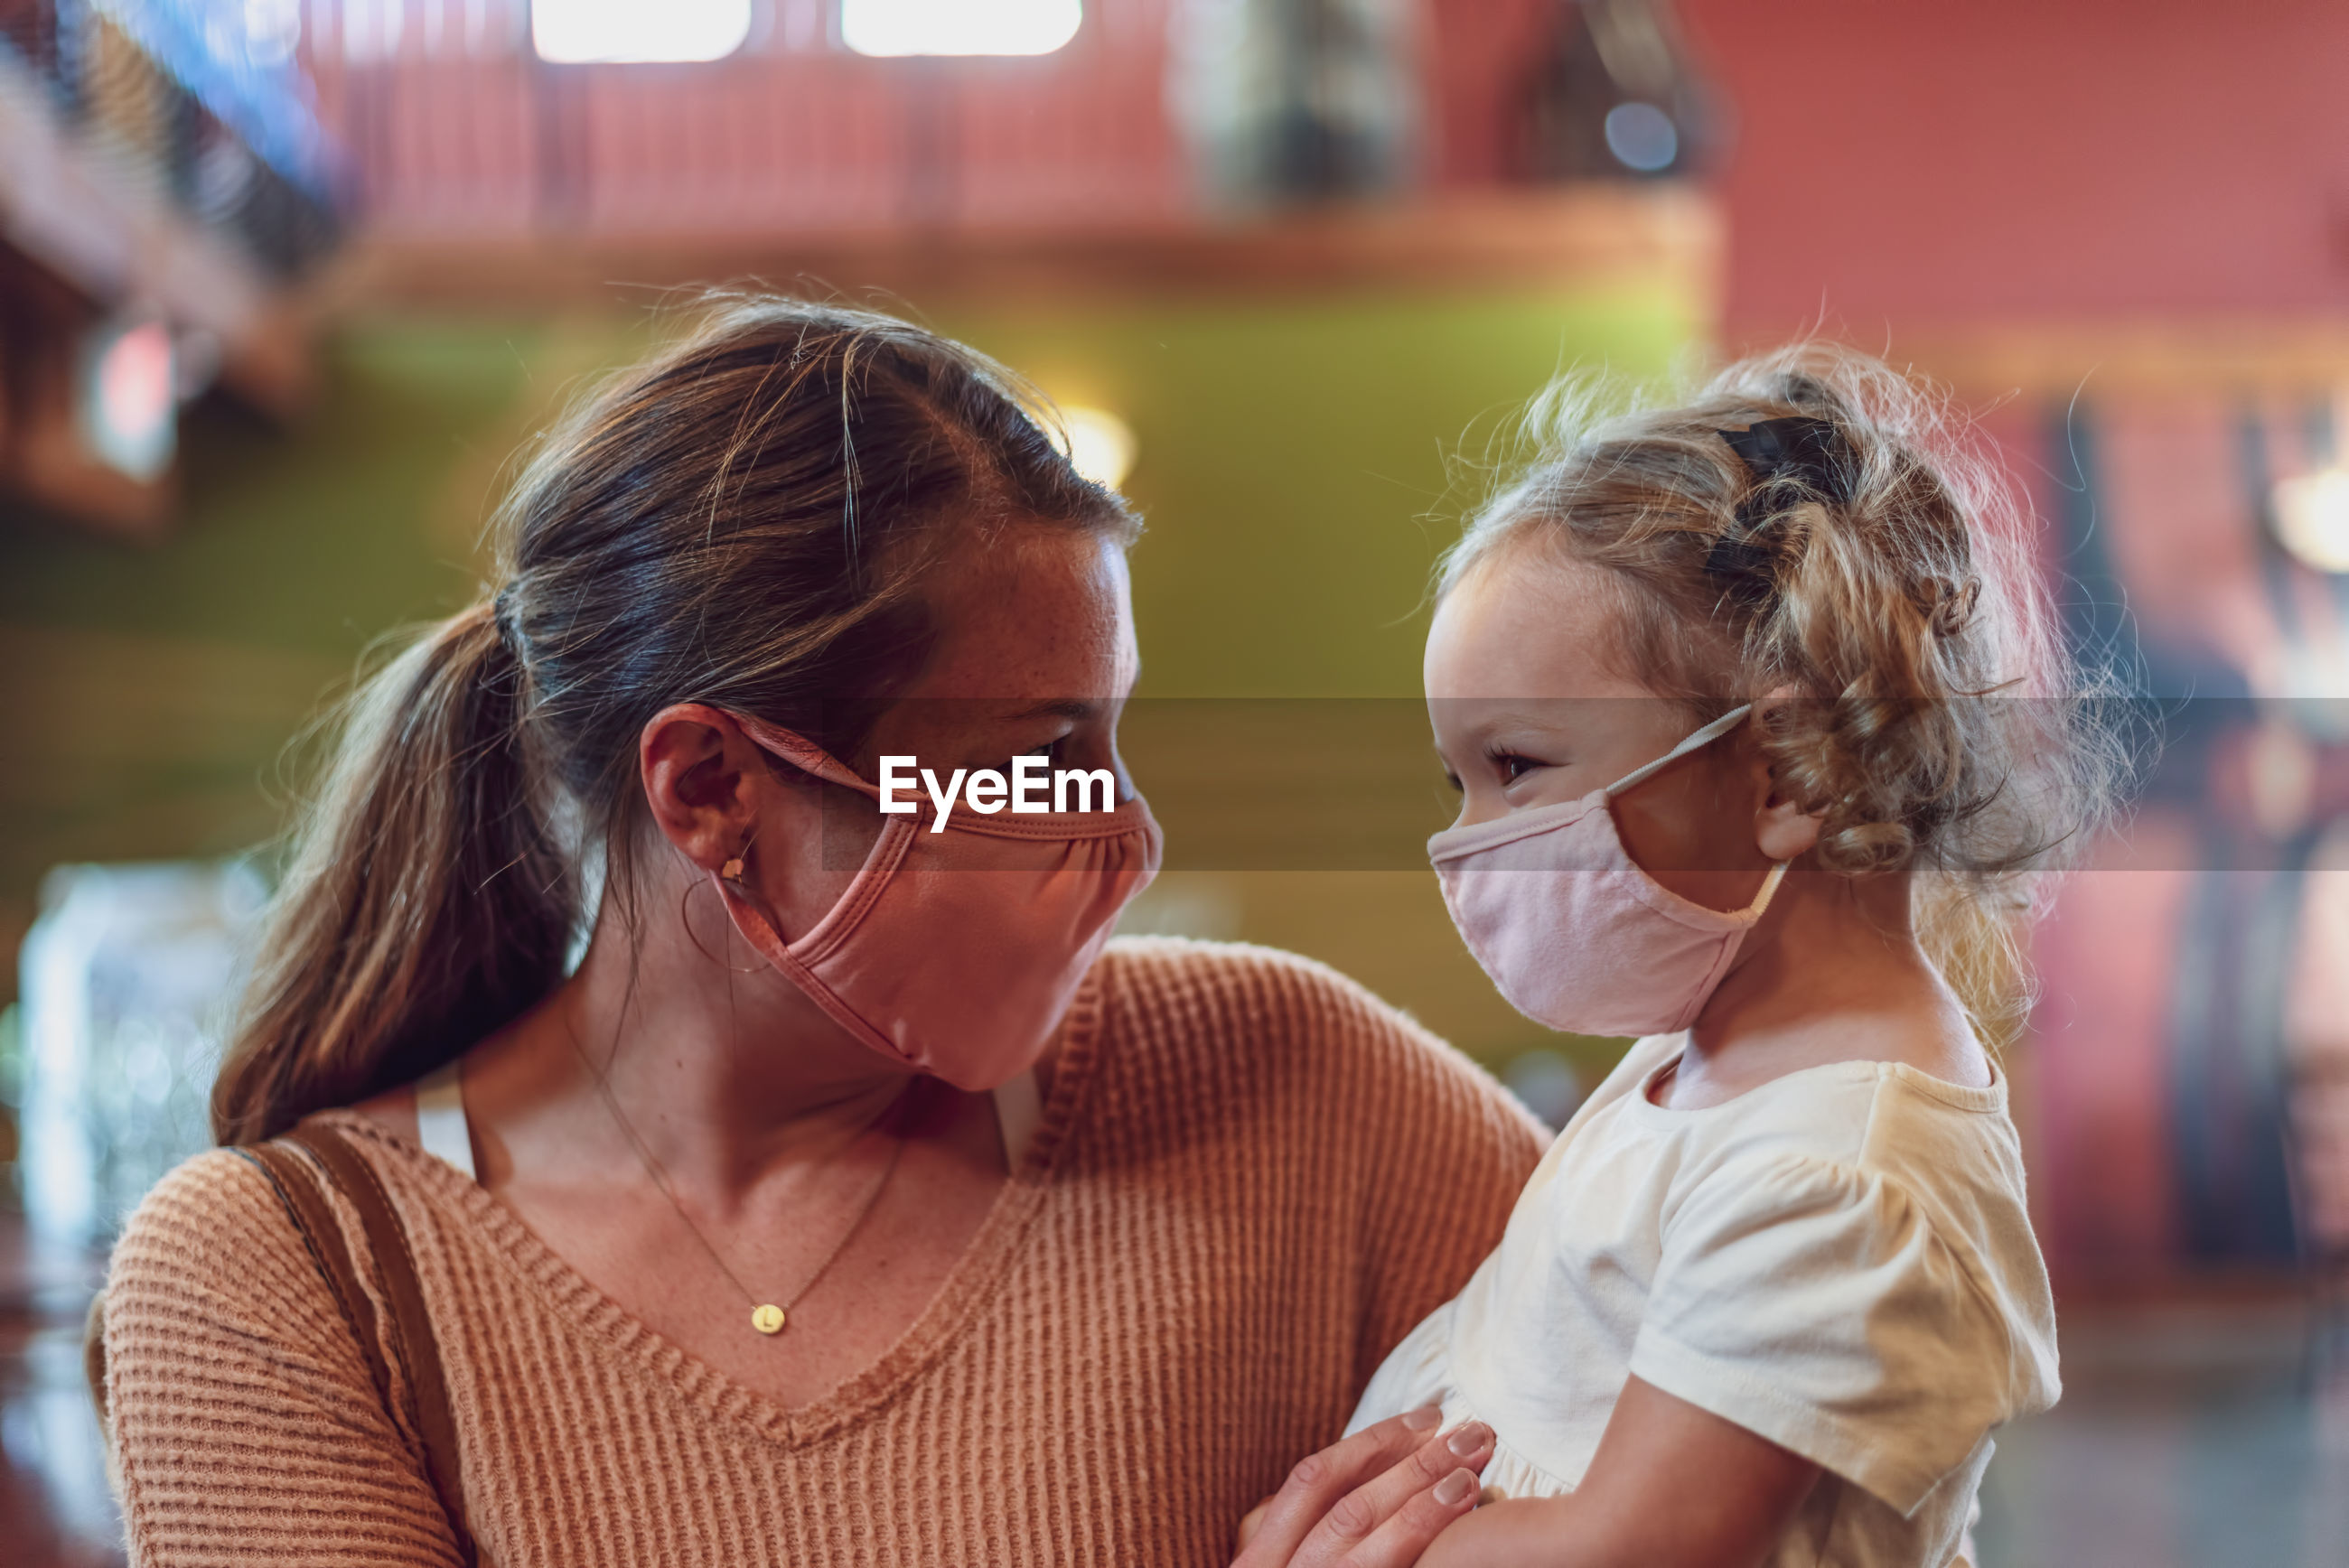 Close-up of mother and daughter wearing mask sanding outdoors